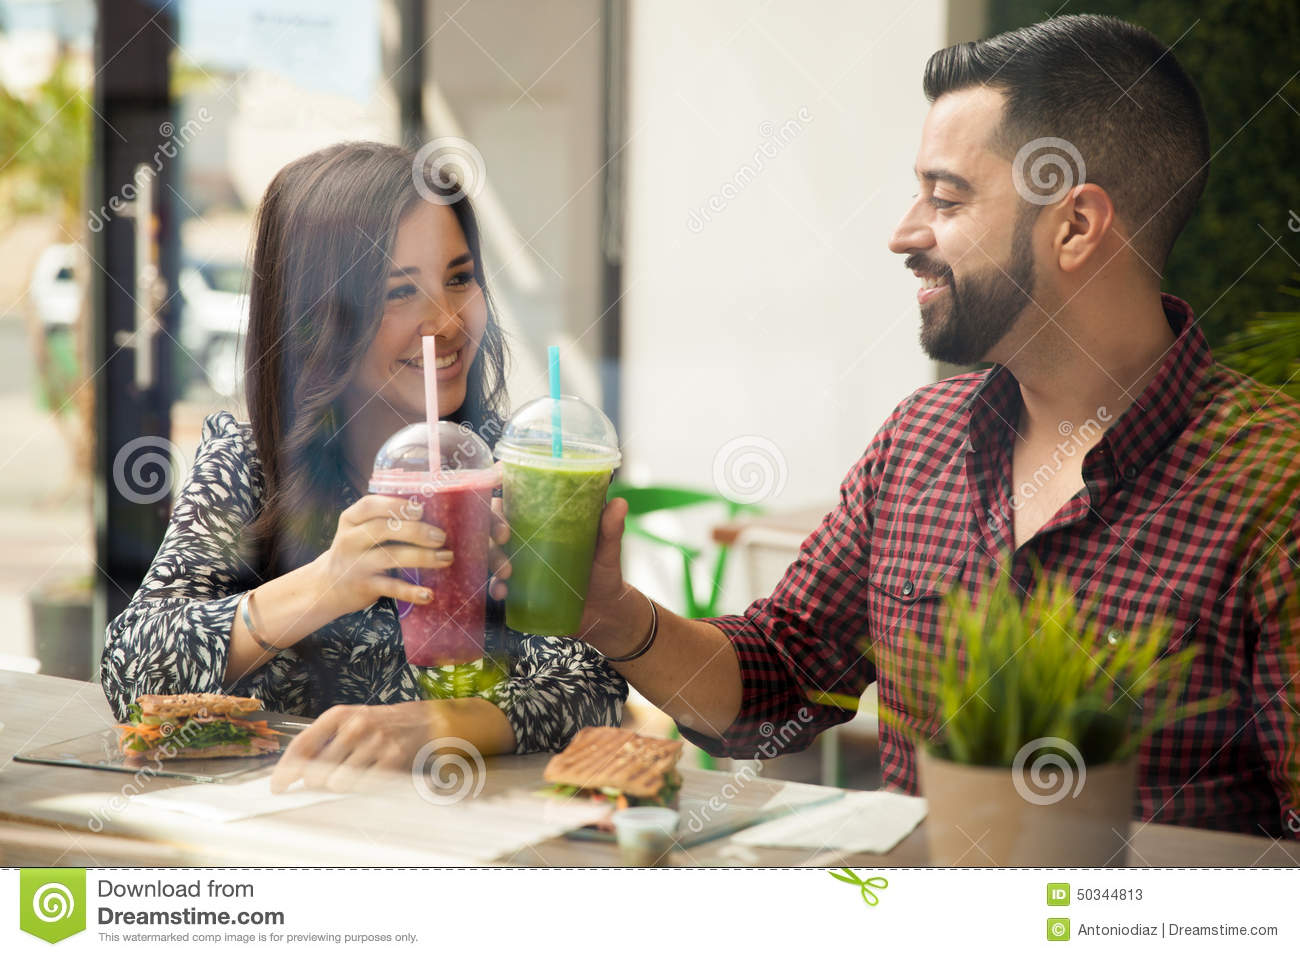 sandwich hispanic singles Hispanic christian singles - if you looking for a partner from the same city, then our site is perfect for you, because you can search for profiles by location obviously, you are advised to stay logical and realistic about the one that intensive communication with you.